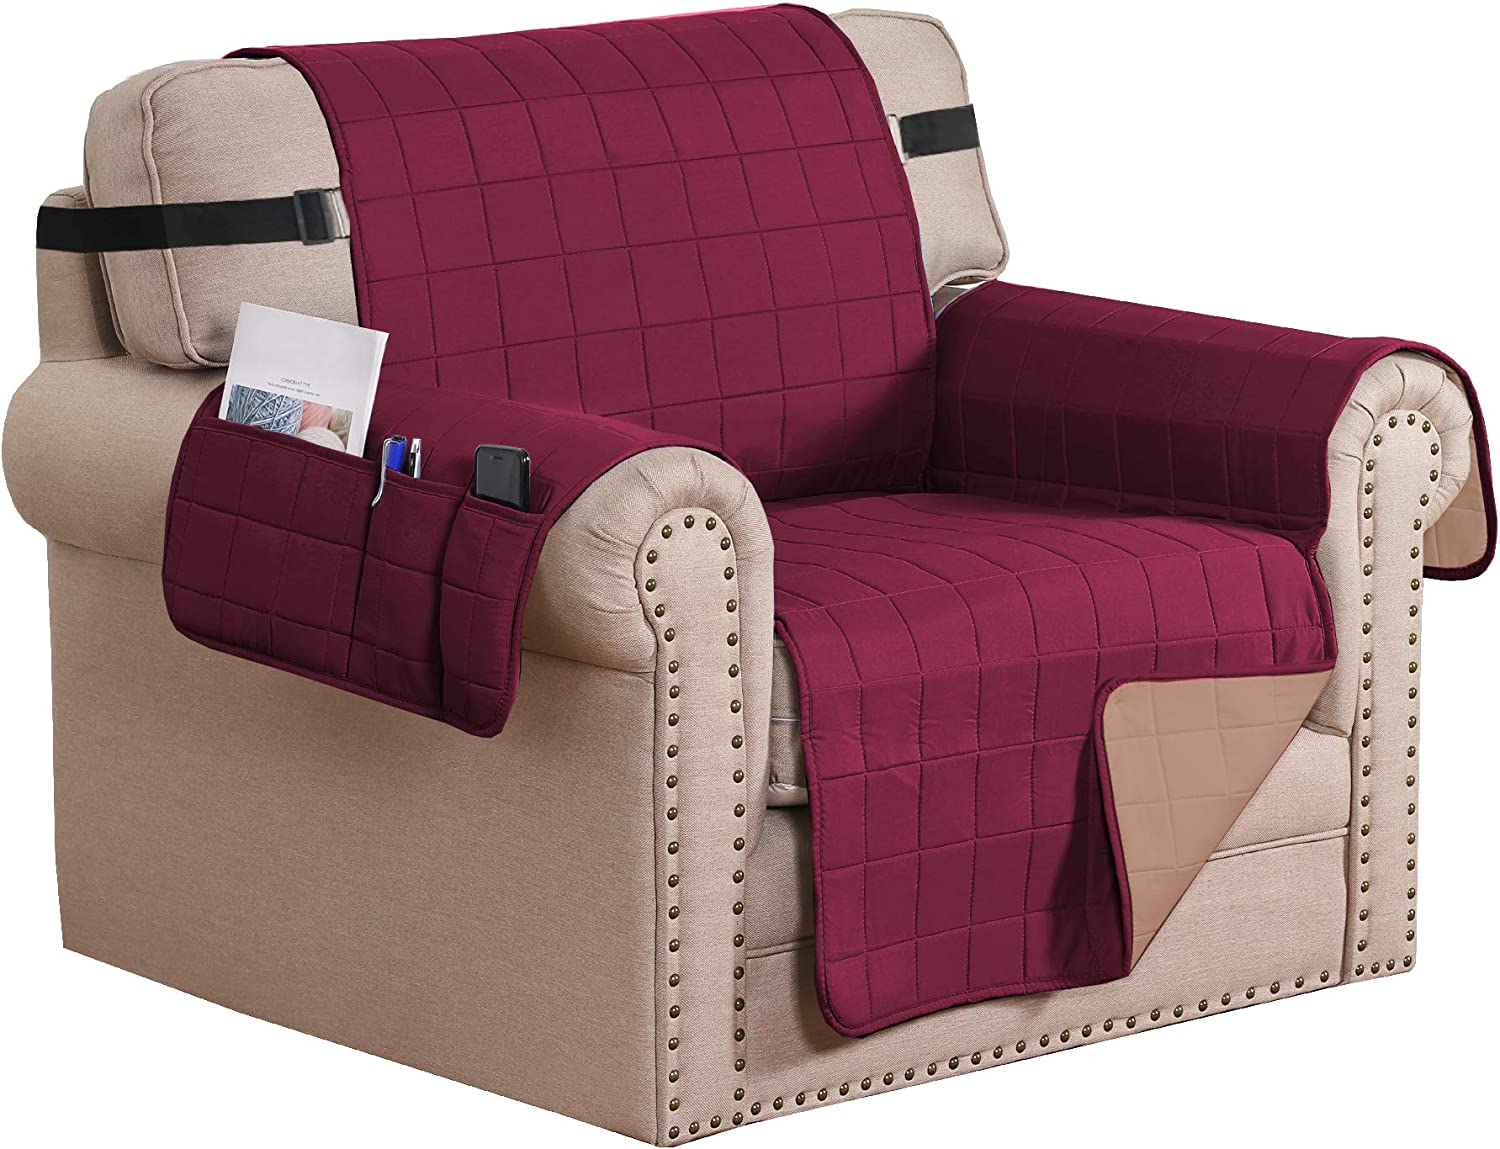 "Reversible Foam Quilted Non-Slip Furniture Protector with Side Pockets, 2"" Straps Covers for Dogs, Water-Repellent Sofa Slipcover, Seat Width Up to 24"", (Chair: Burgundy/Tan)"